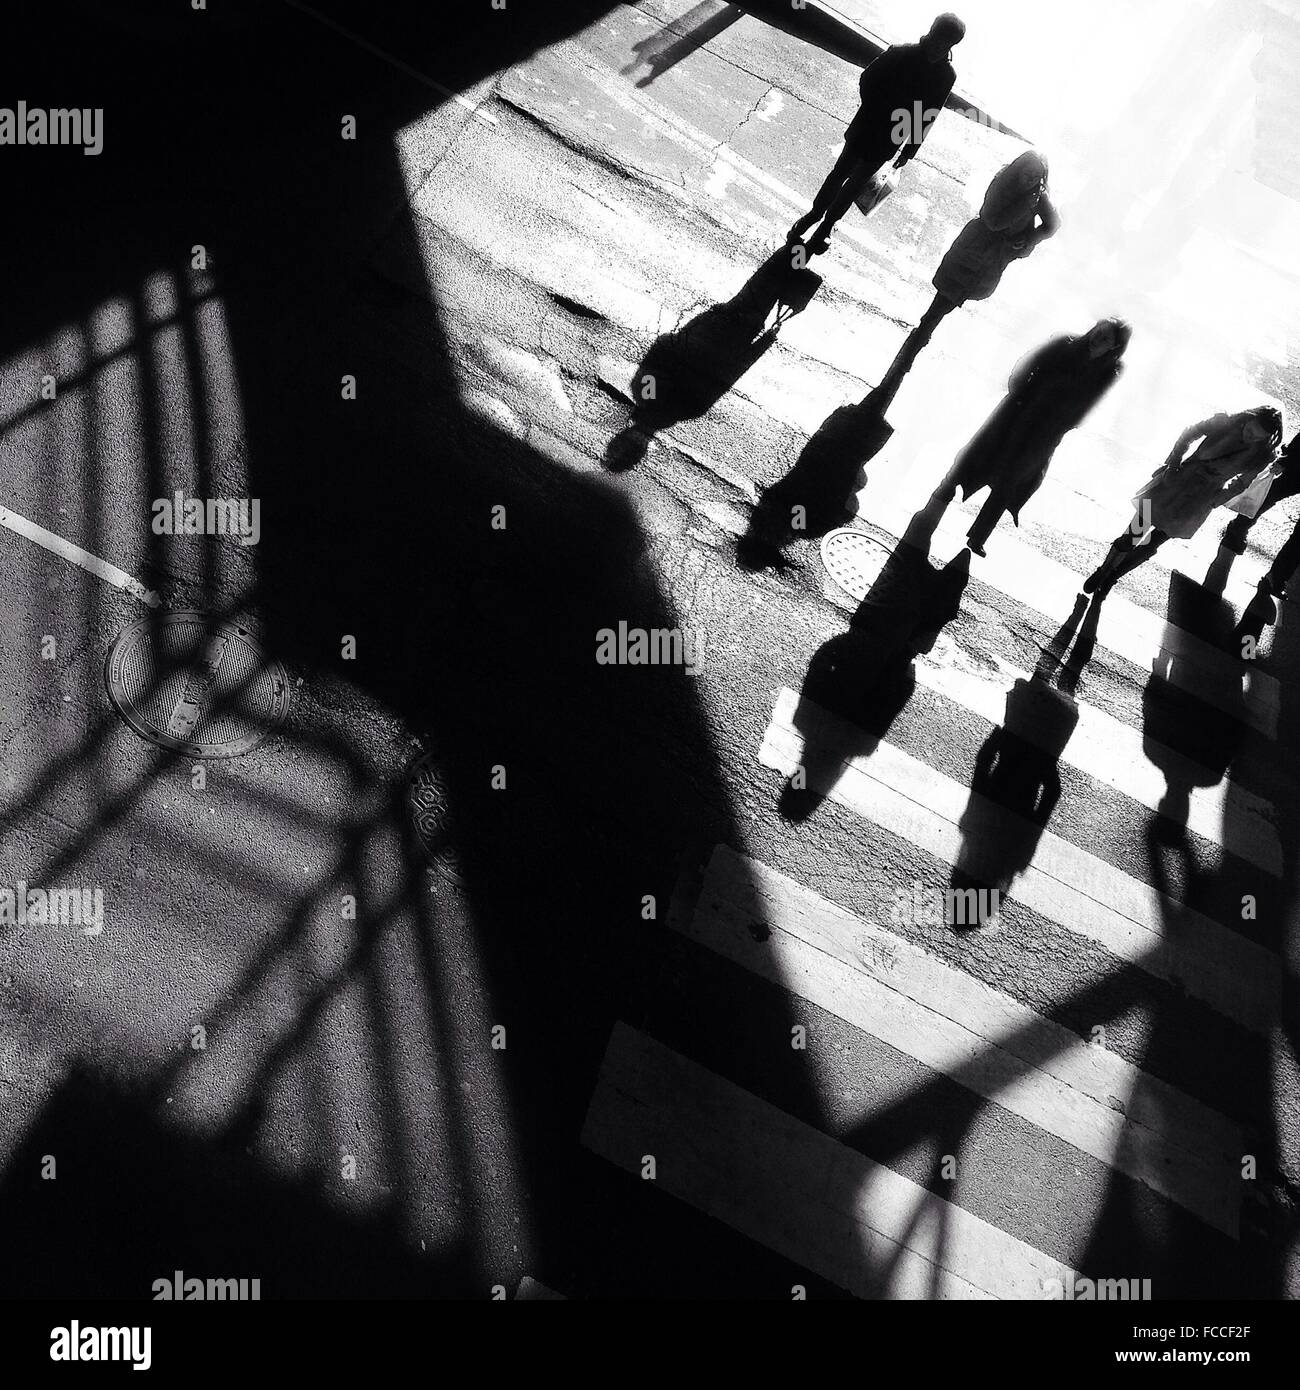 High Angle View Of People Walking On Zebra Crossing Stock Photo